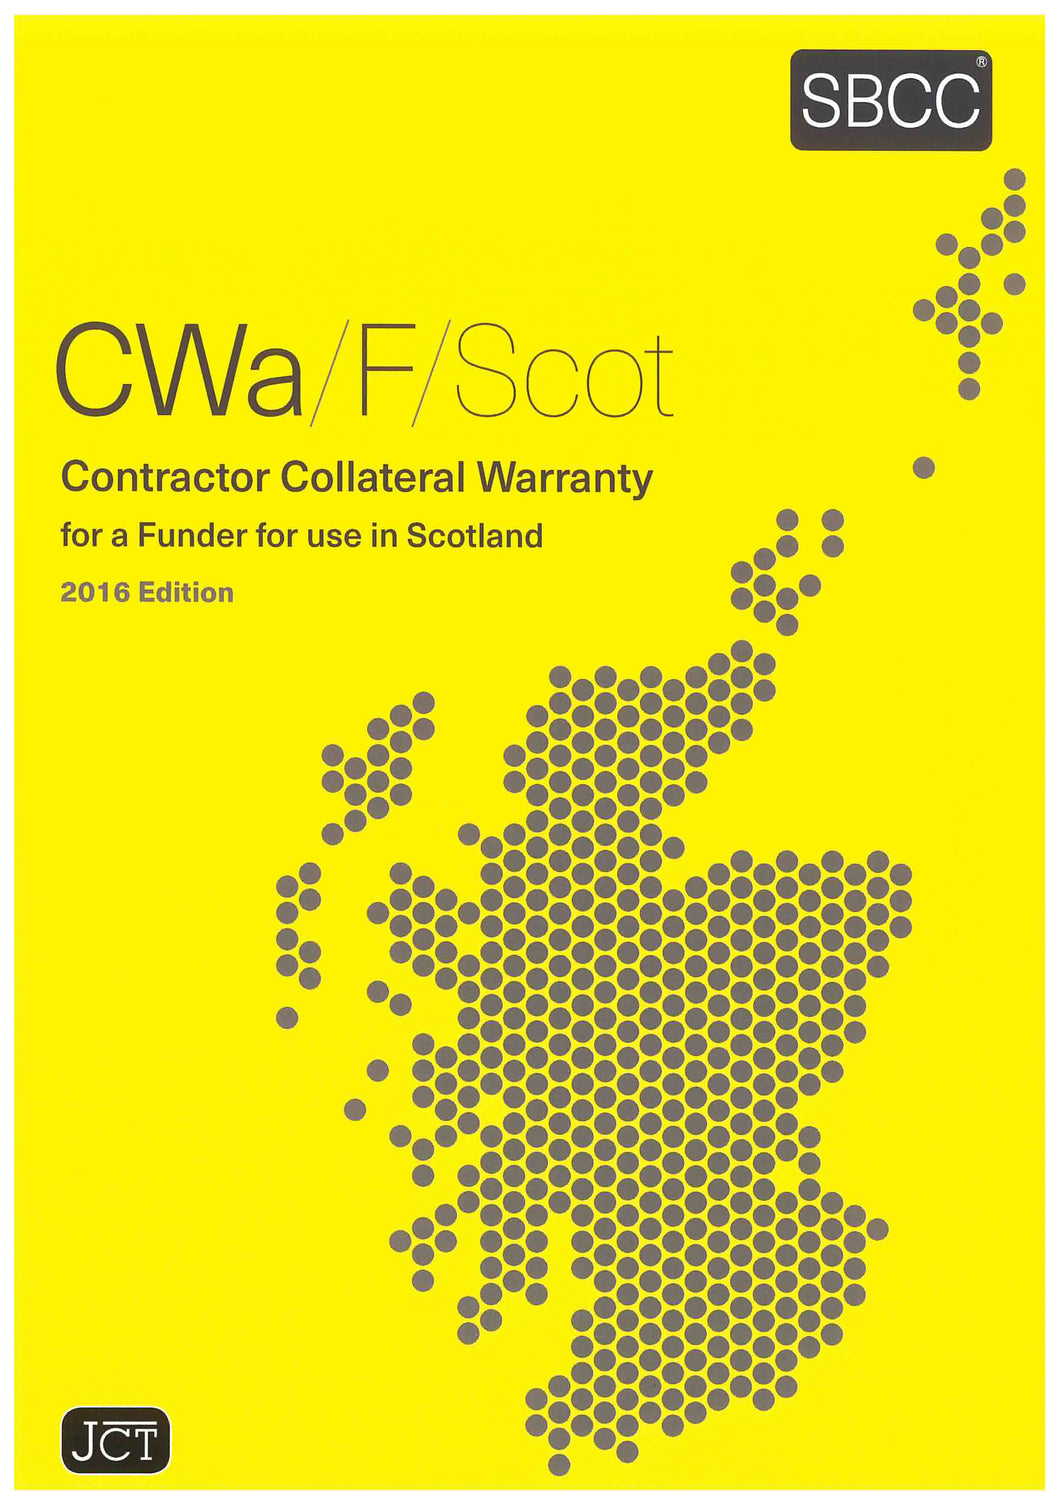 Contractor Collateral Warranty for a Funder for use in Scotland 2016